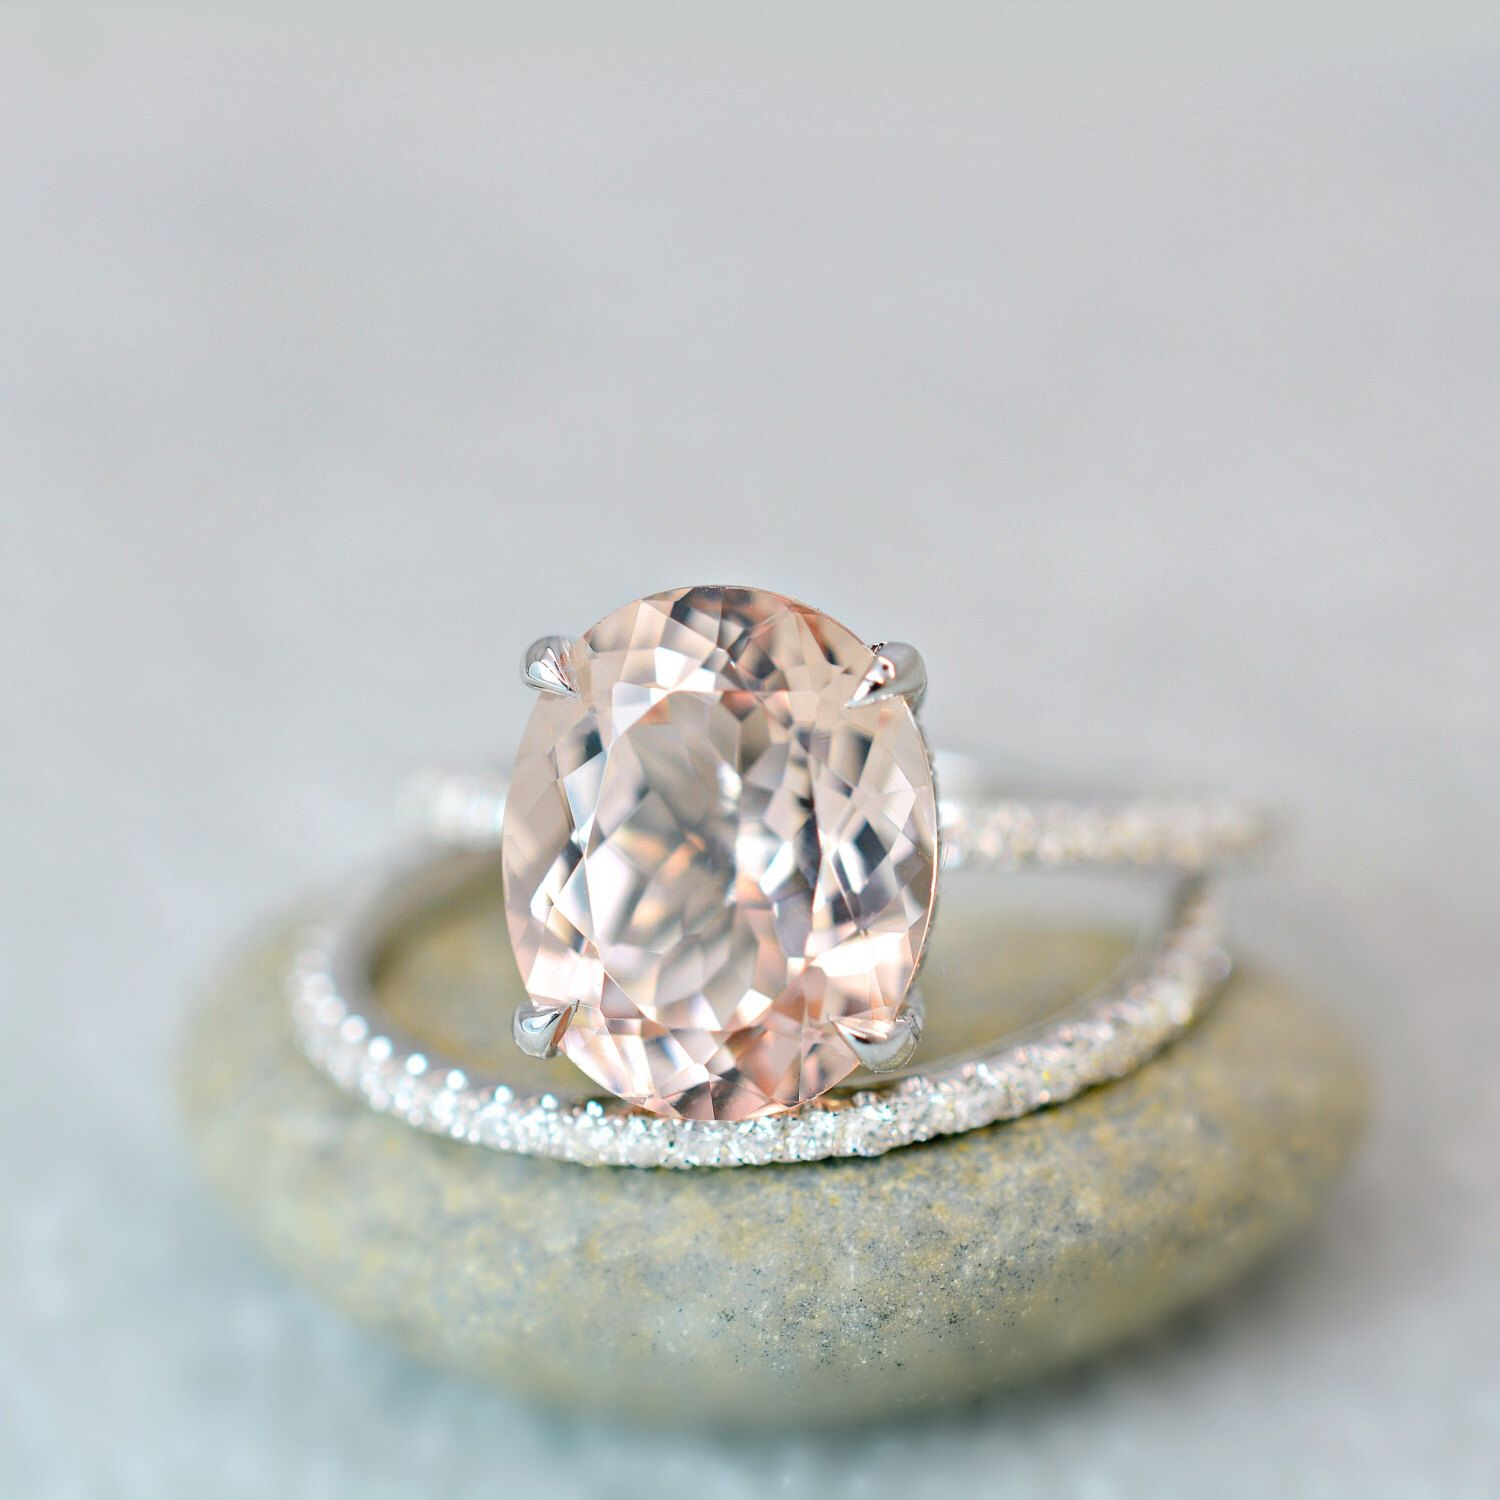 3 40 Ct Oval Cut Morganite & Diamond Engagement Ring on 14K White